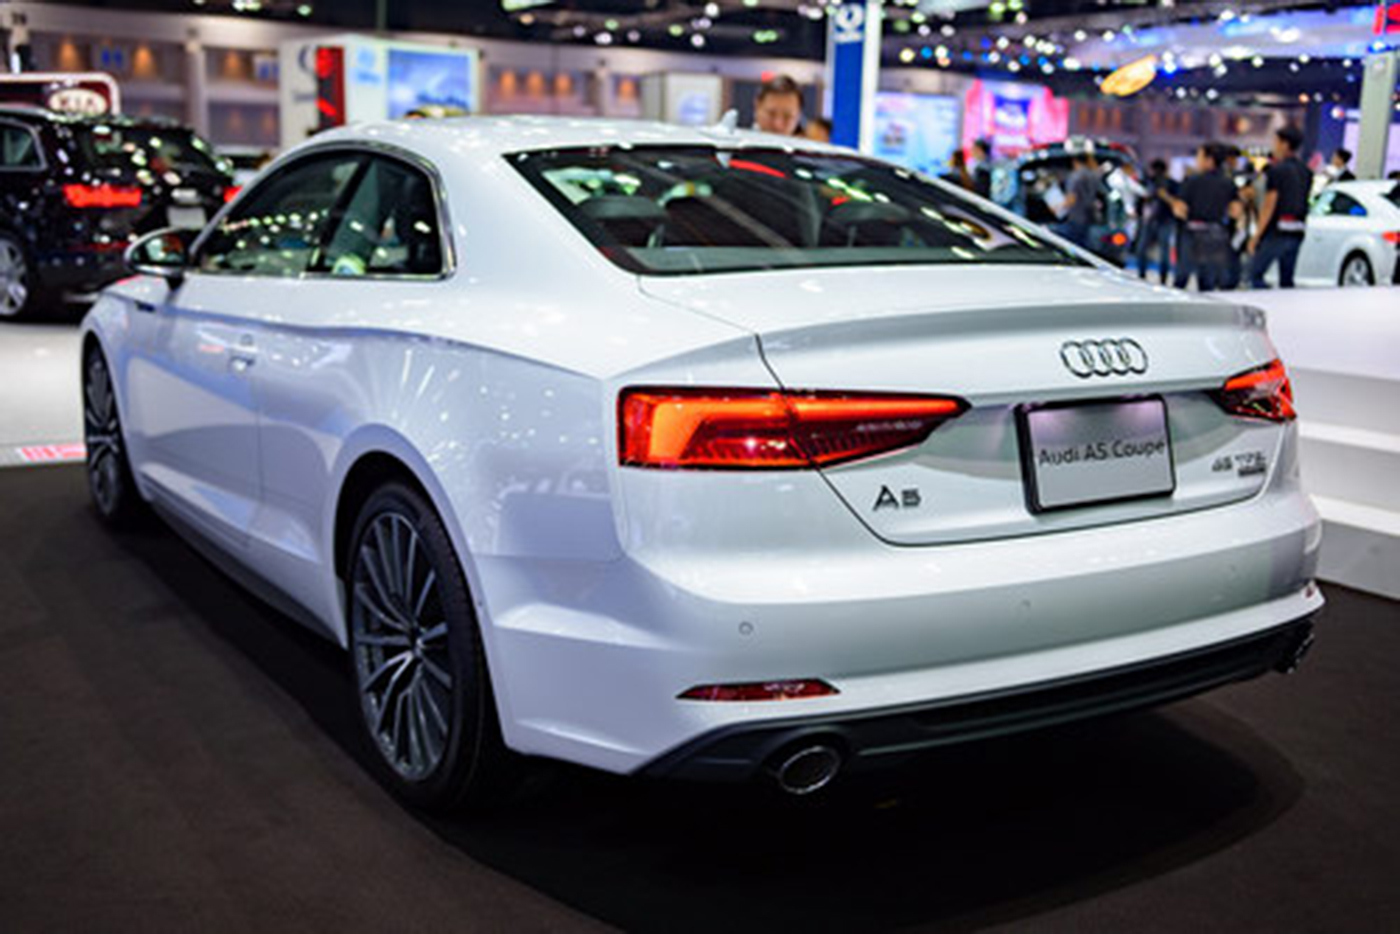 audi-a5-coupe-2017-2.jpg